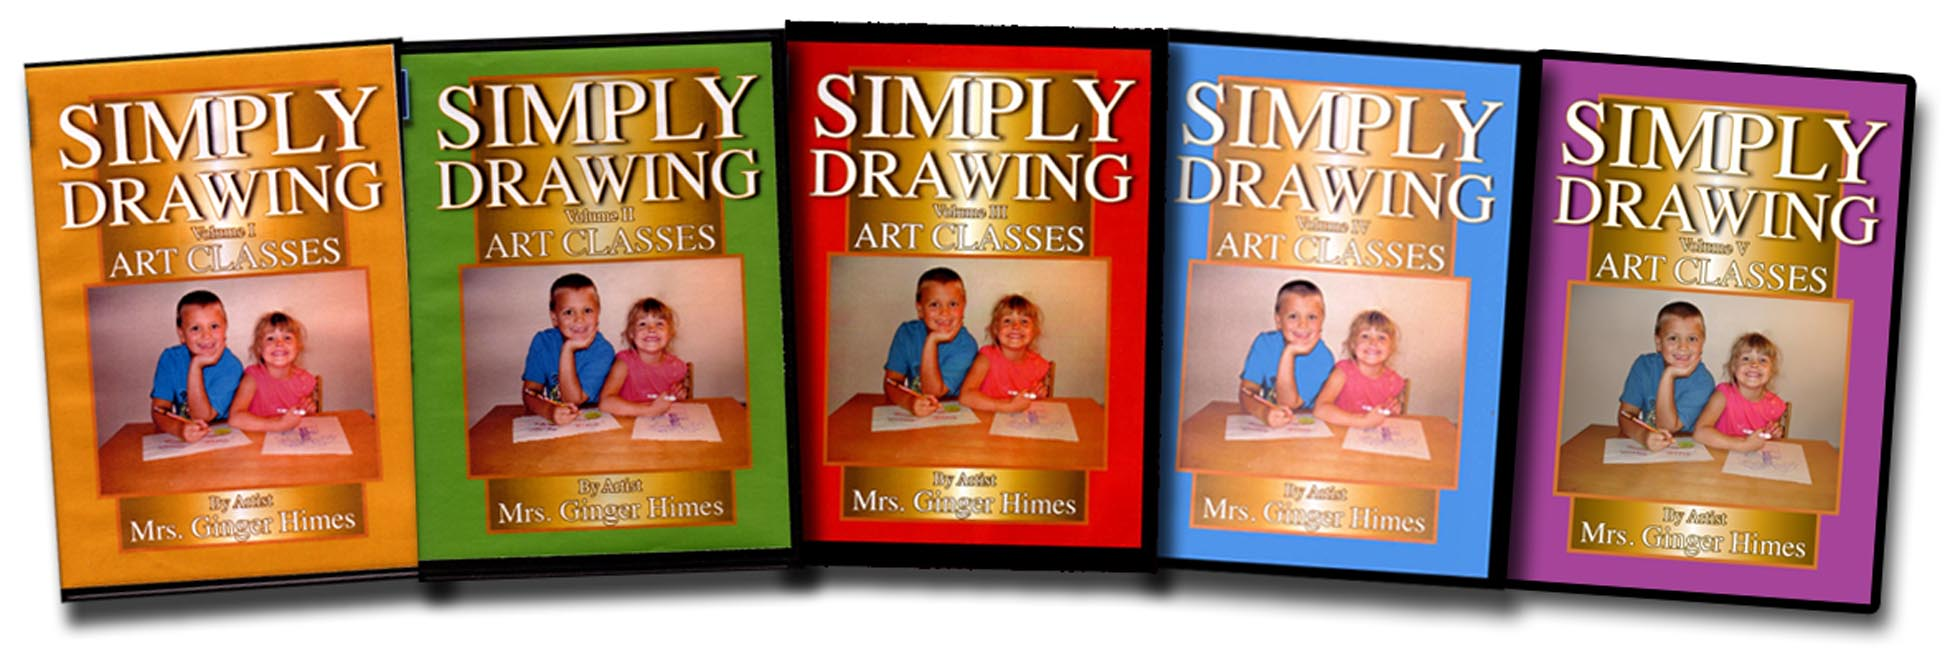 Simply Drawing Vol. 1-5 Set